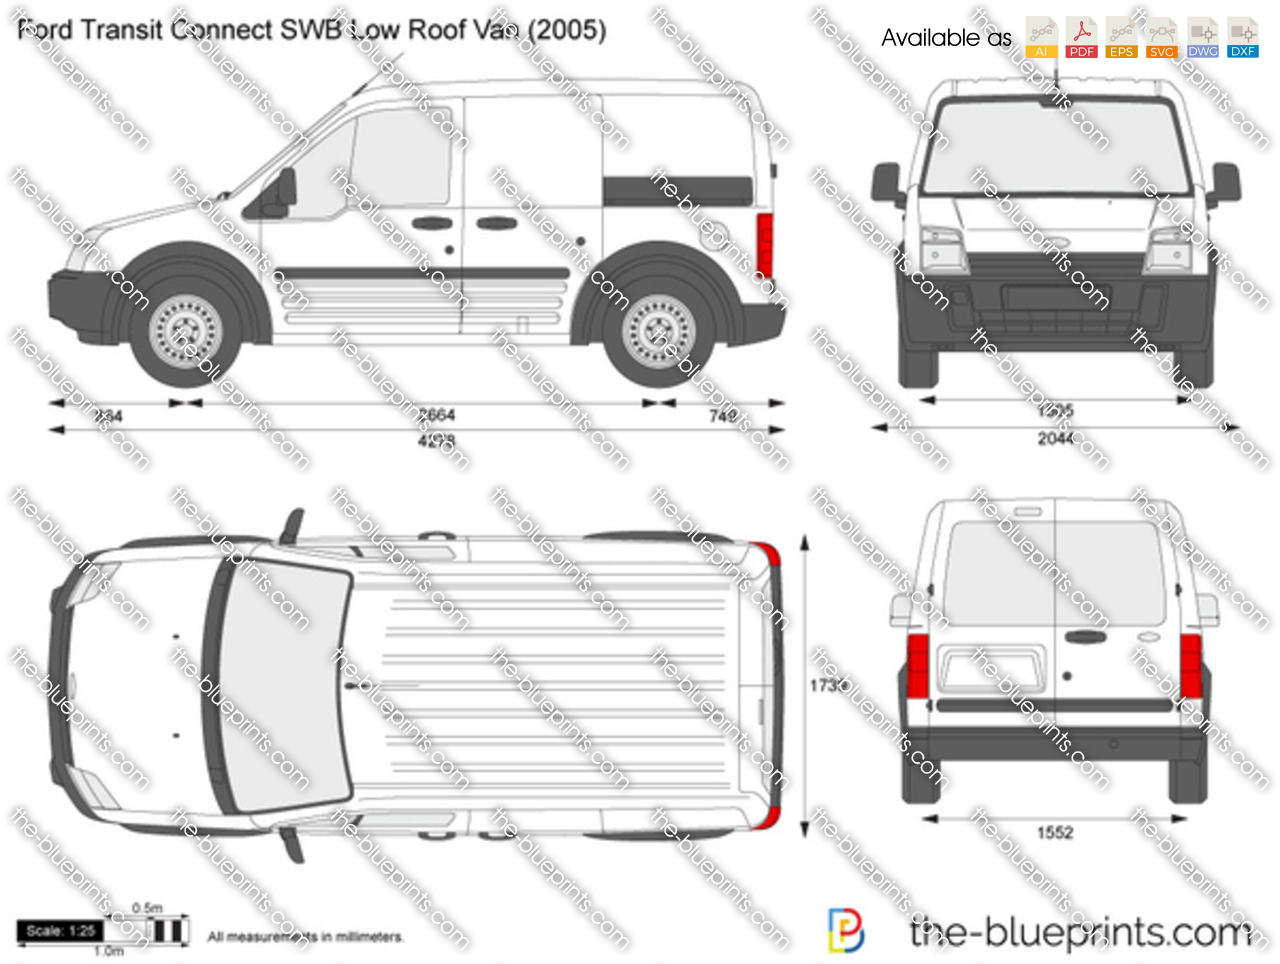 ford transit connect swb low roof van vector drawing. Black Bedroom Furniture Sets. Home Design Ideas